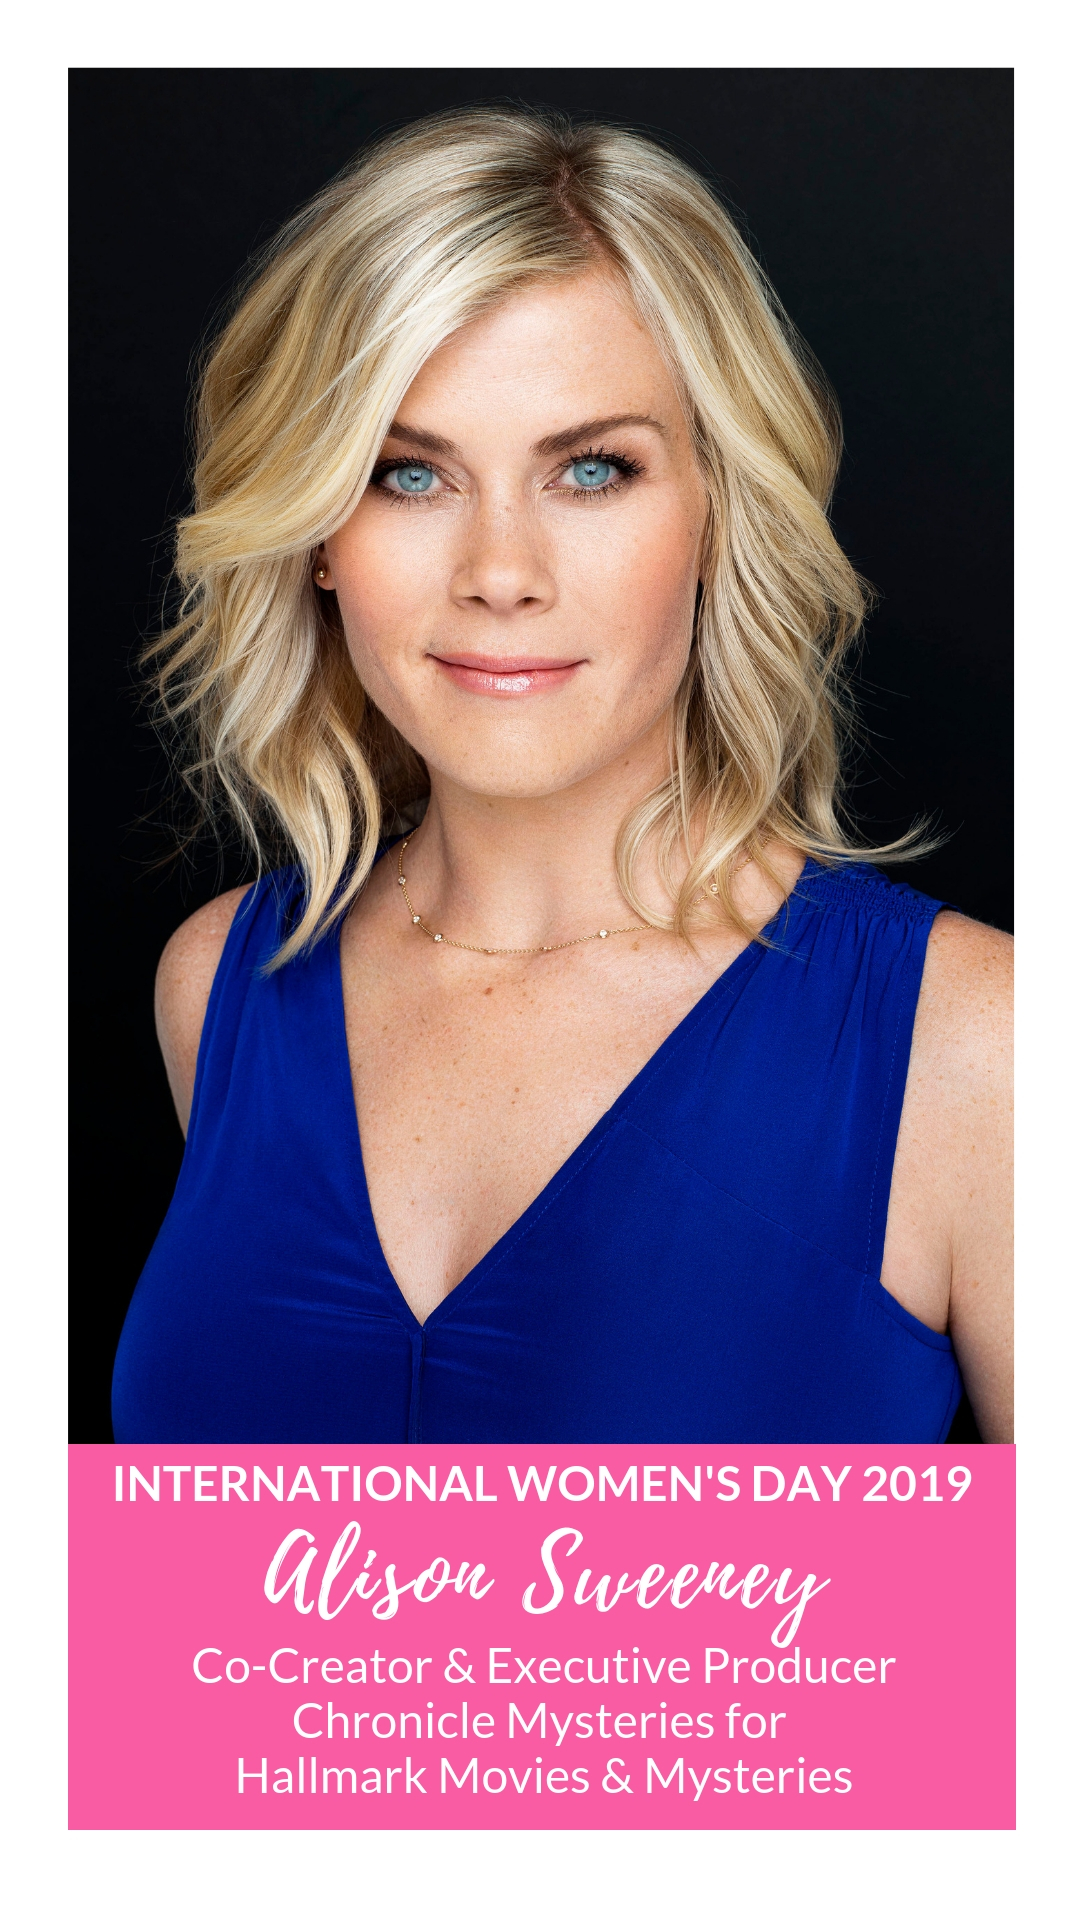 International Women's Day - Alison Sweeney